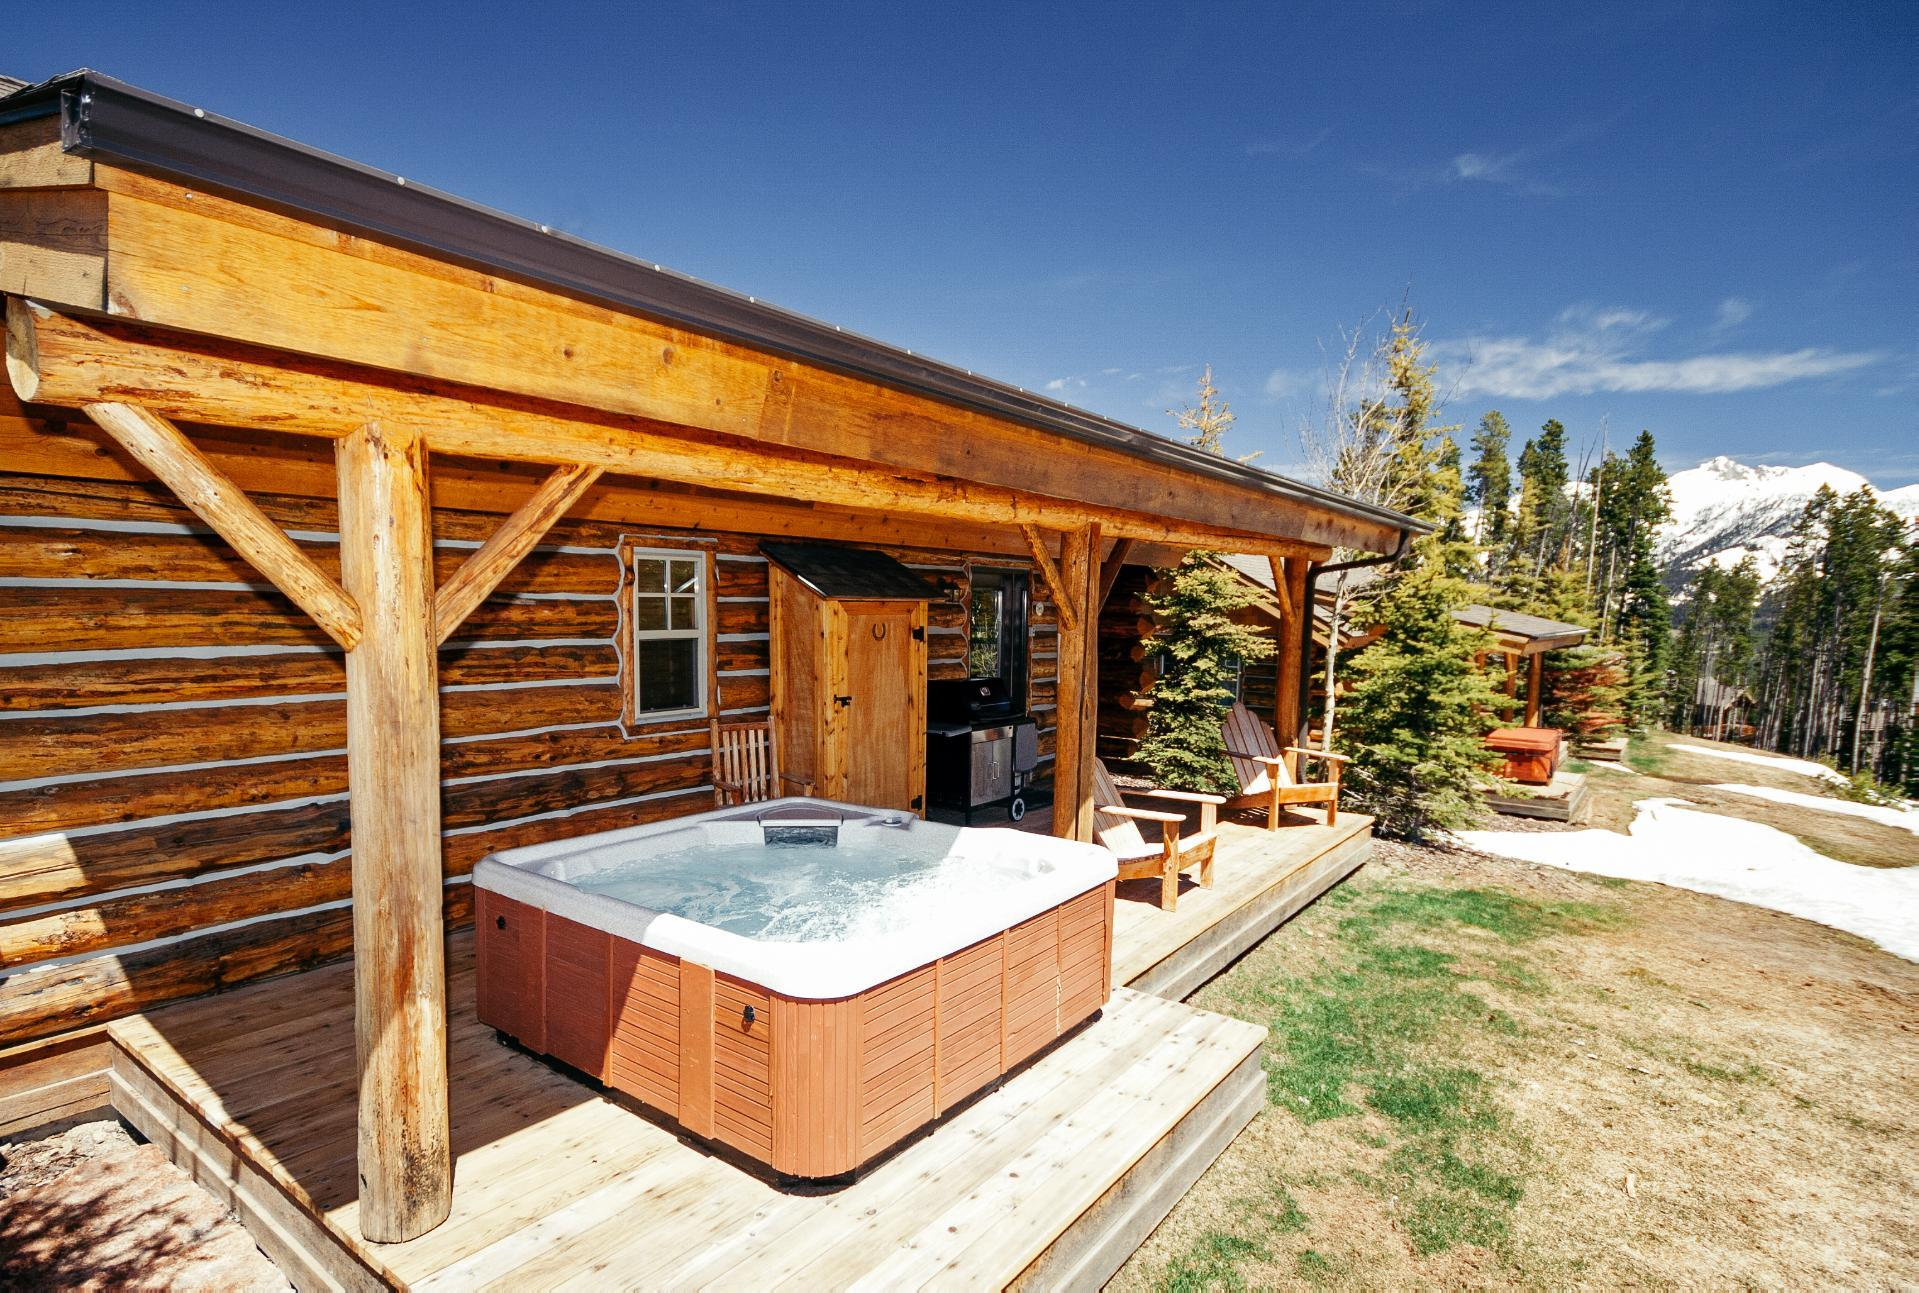 Modern Log Home with Ski Access and Private Hot Tub